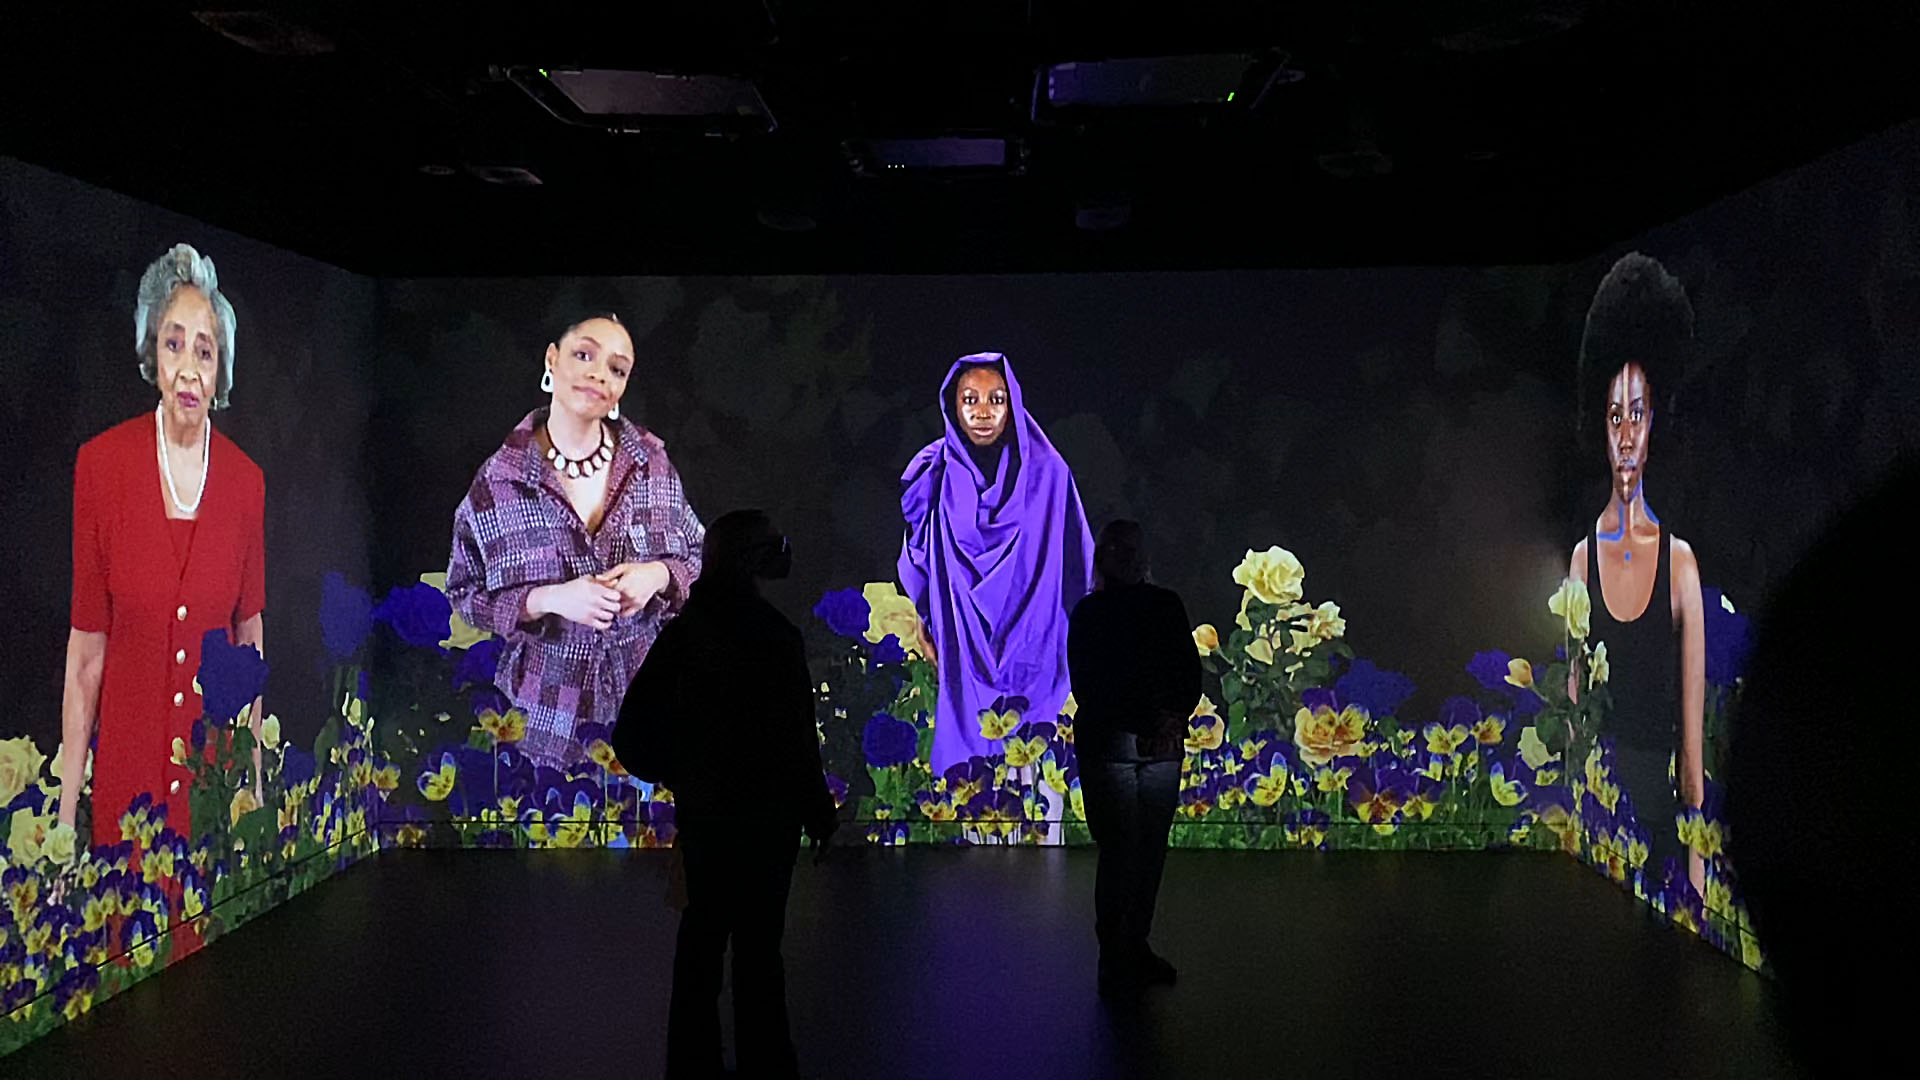 A large projection covers three walls of a dark room, showing a video of four Black women of various ages standing in a digitally collaged field of purple and yellow flowers. Two silhouettes are just barely visible, standing in the middle of the room and watching the video.